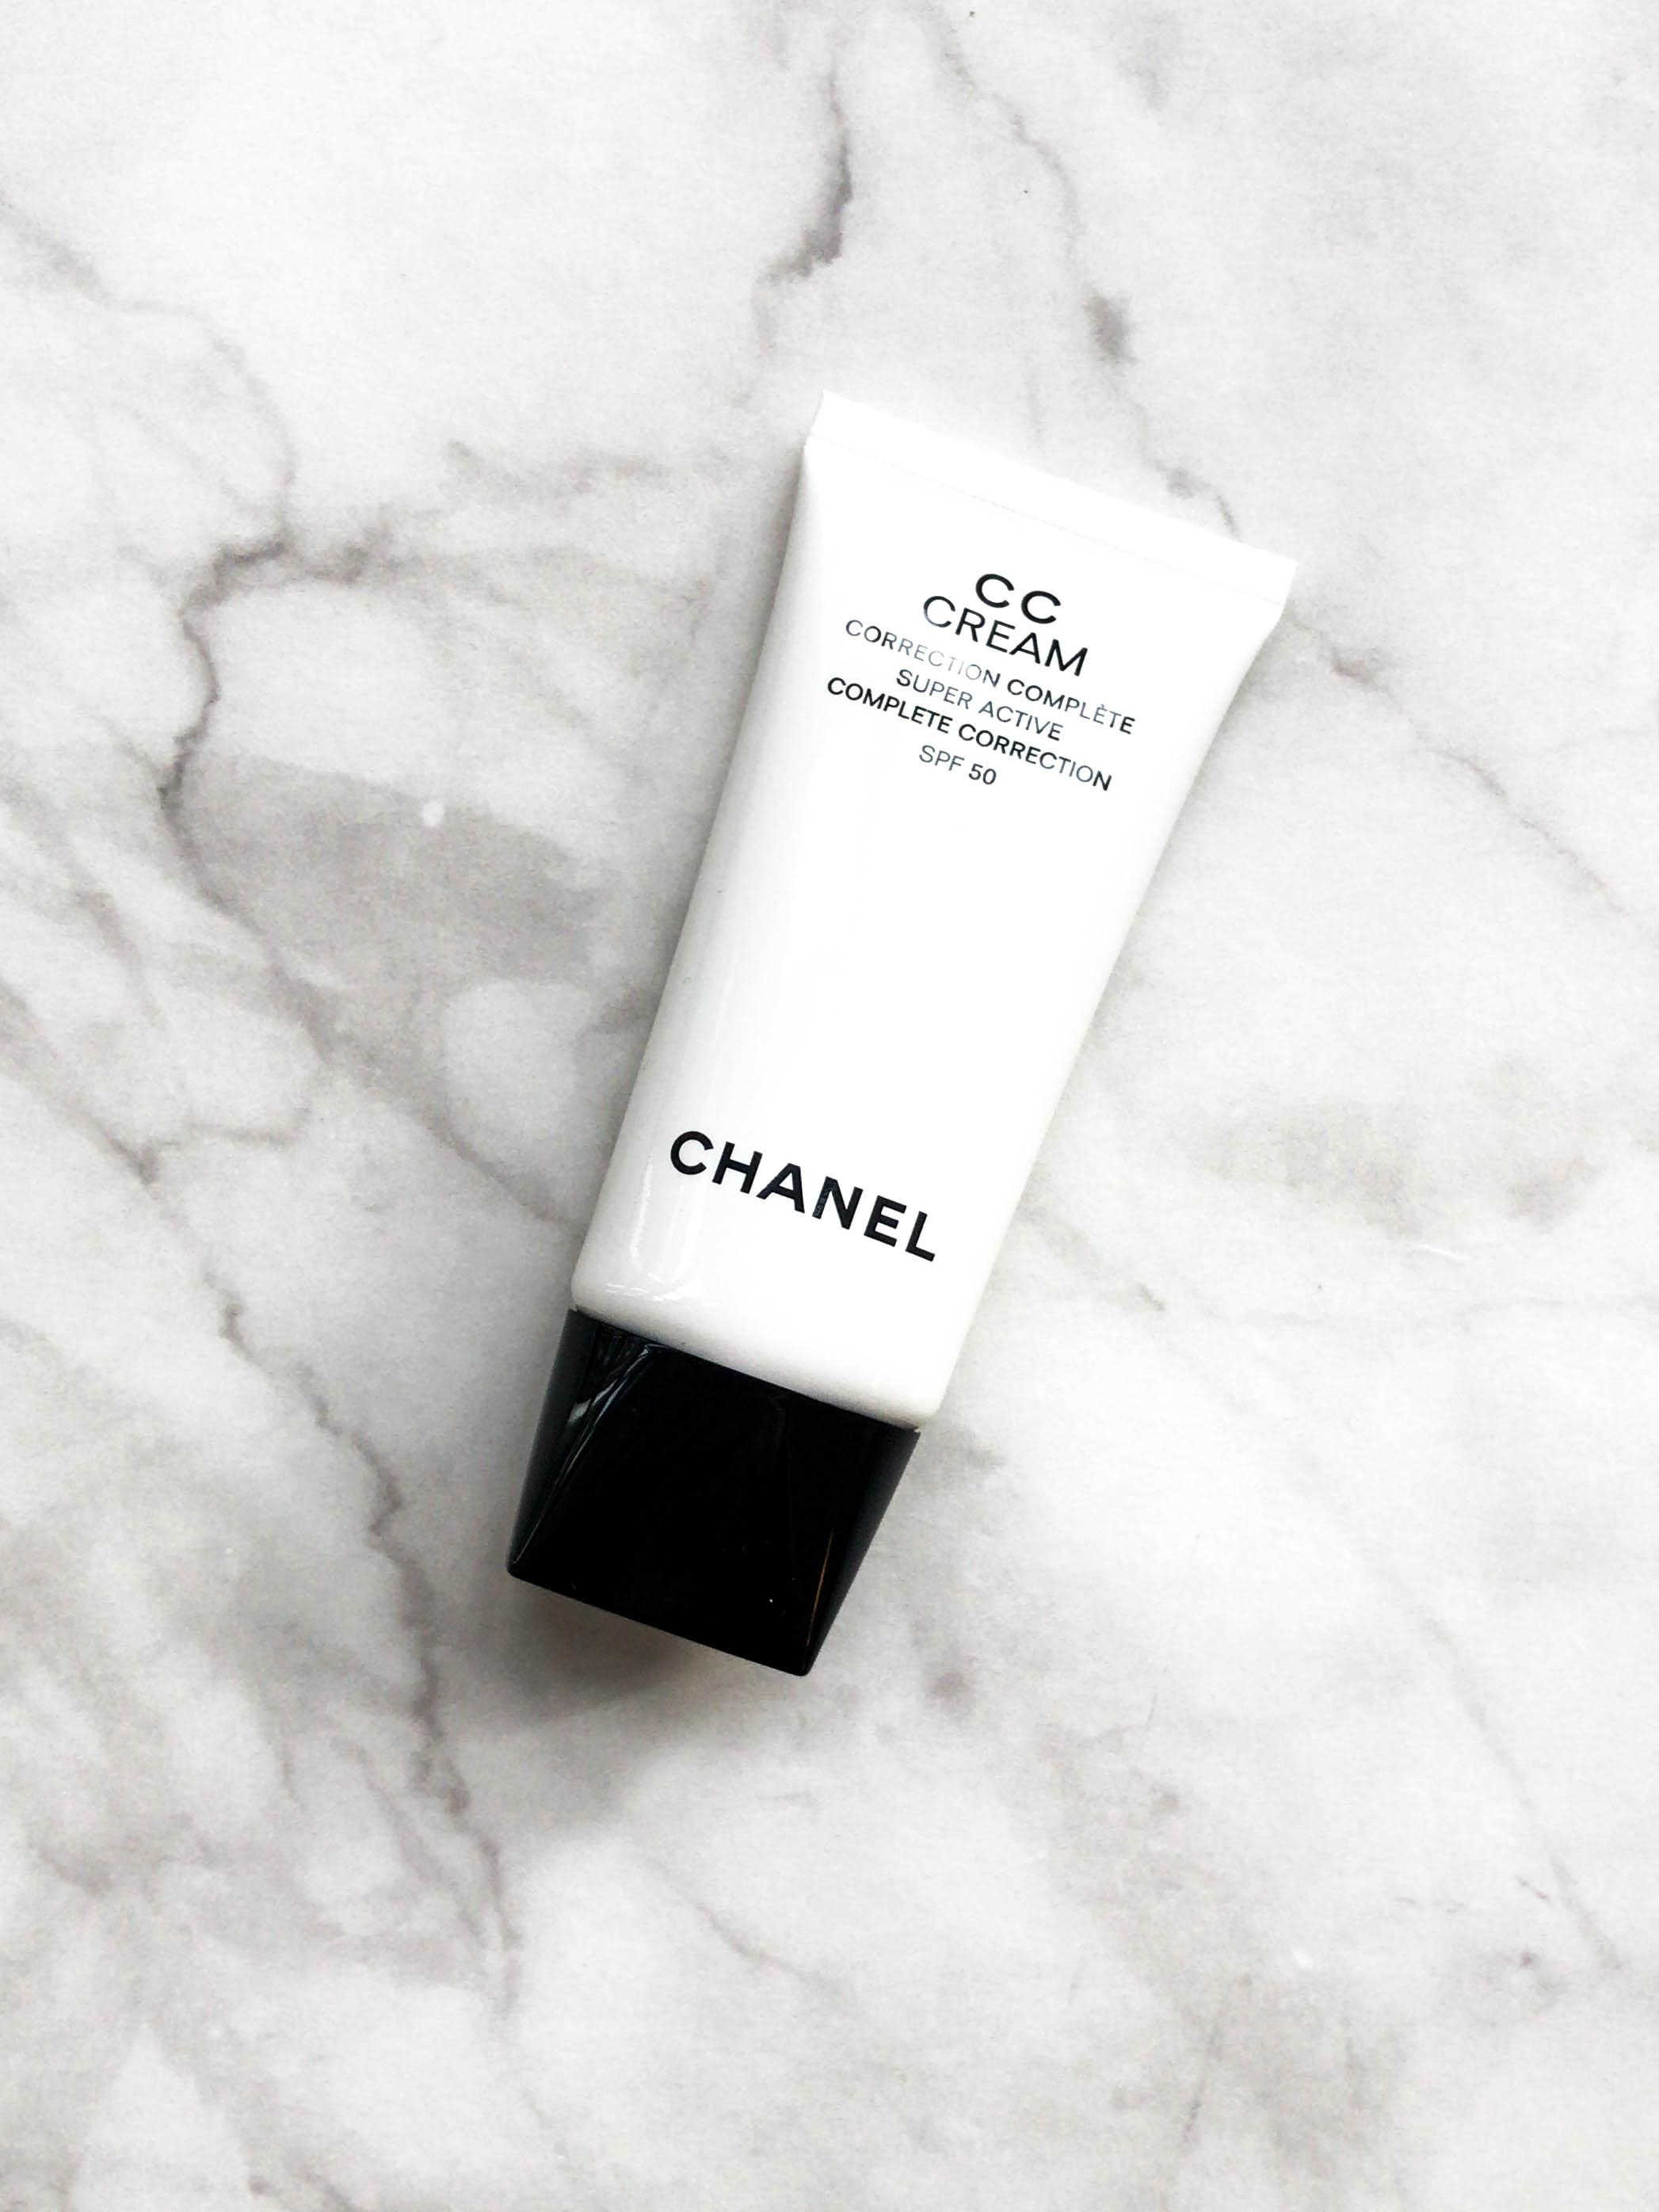 Teint-Korrigierer: Chanel Correction Complète CC Cream 